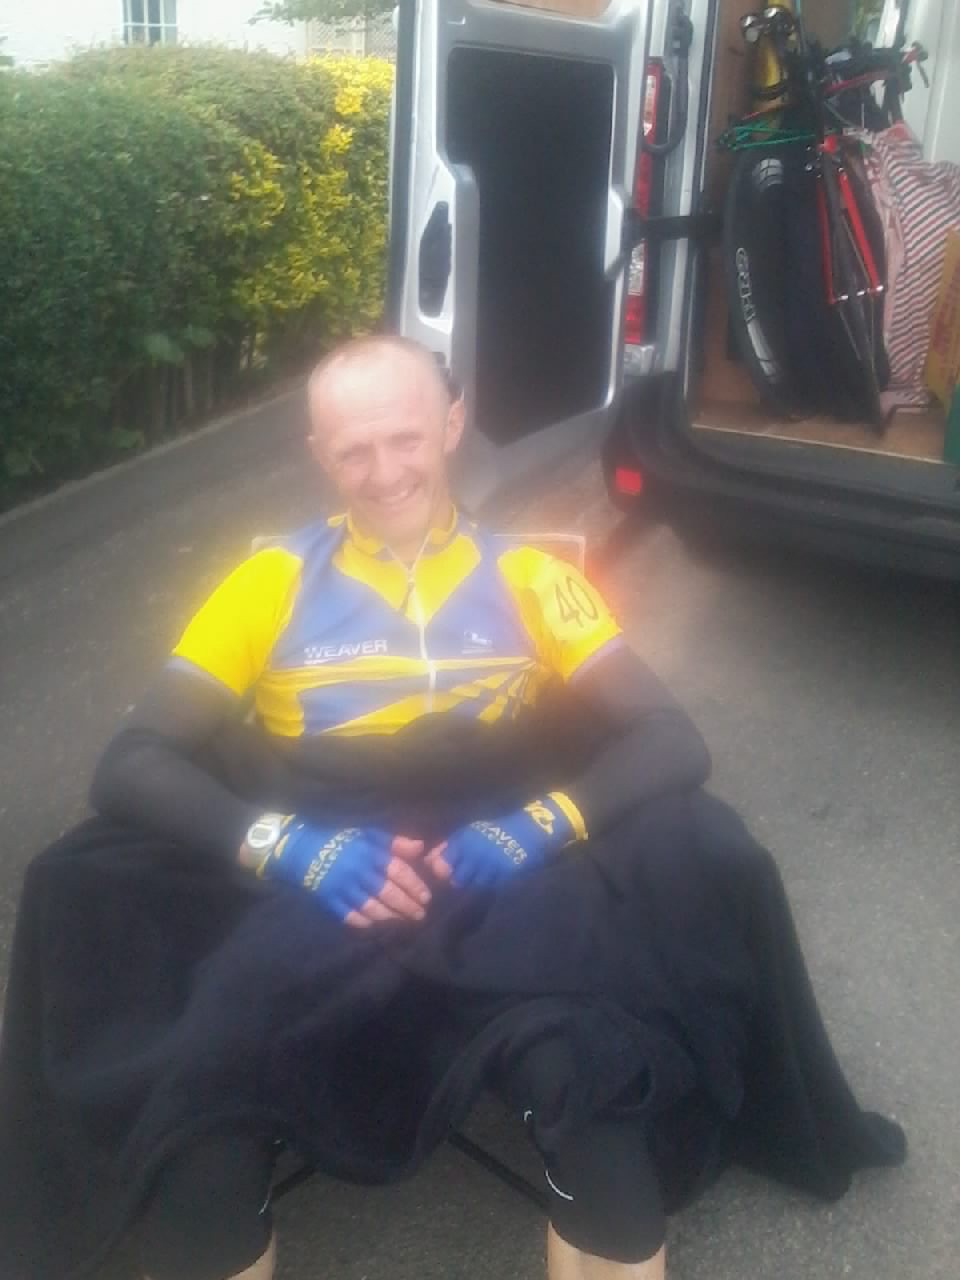 """it all went a bit blurry during the night"" said Dave. Also after the event by the looks of it. Dave sits down with his comfort blanket, whilst his legs are safely stowed in the van ready for next year..."